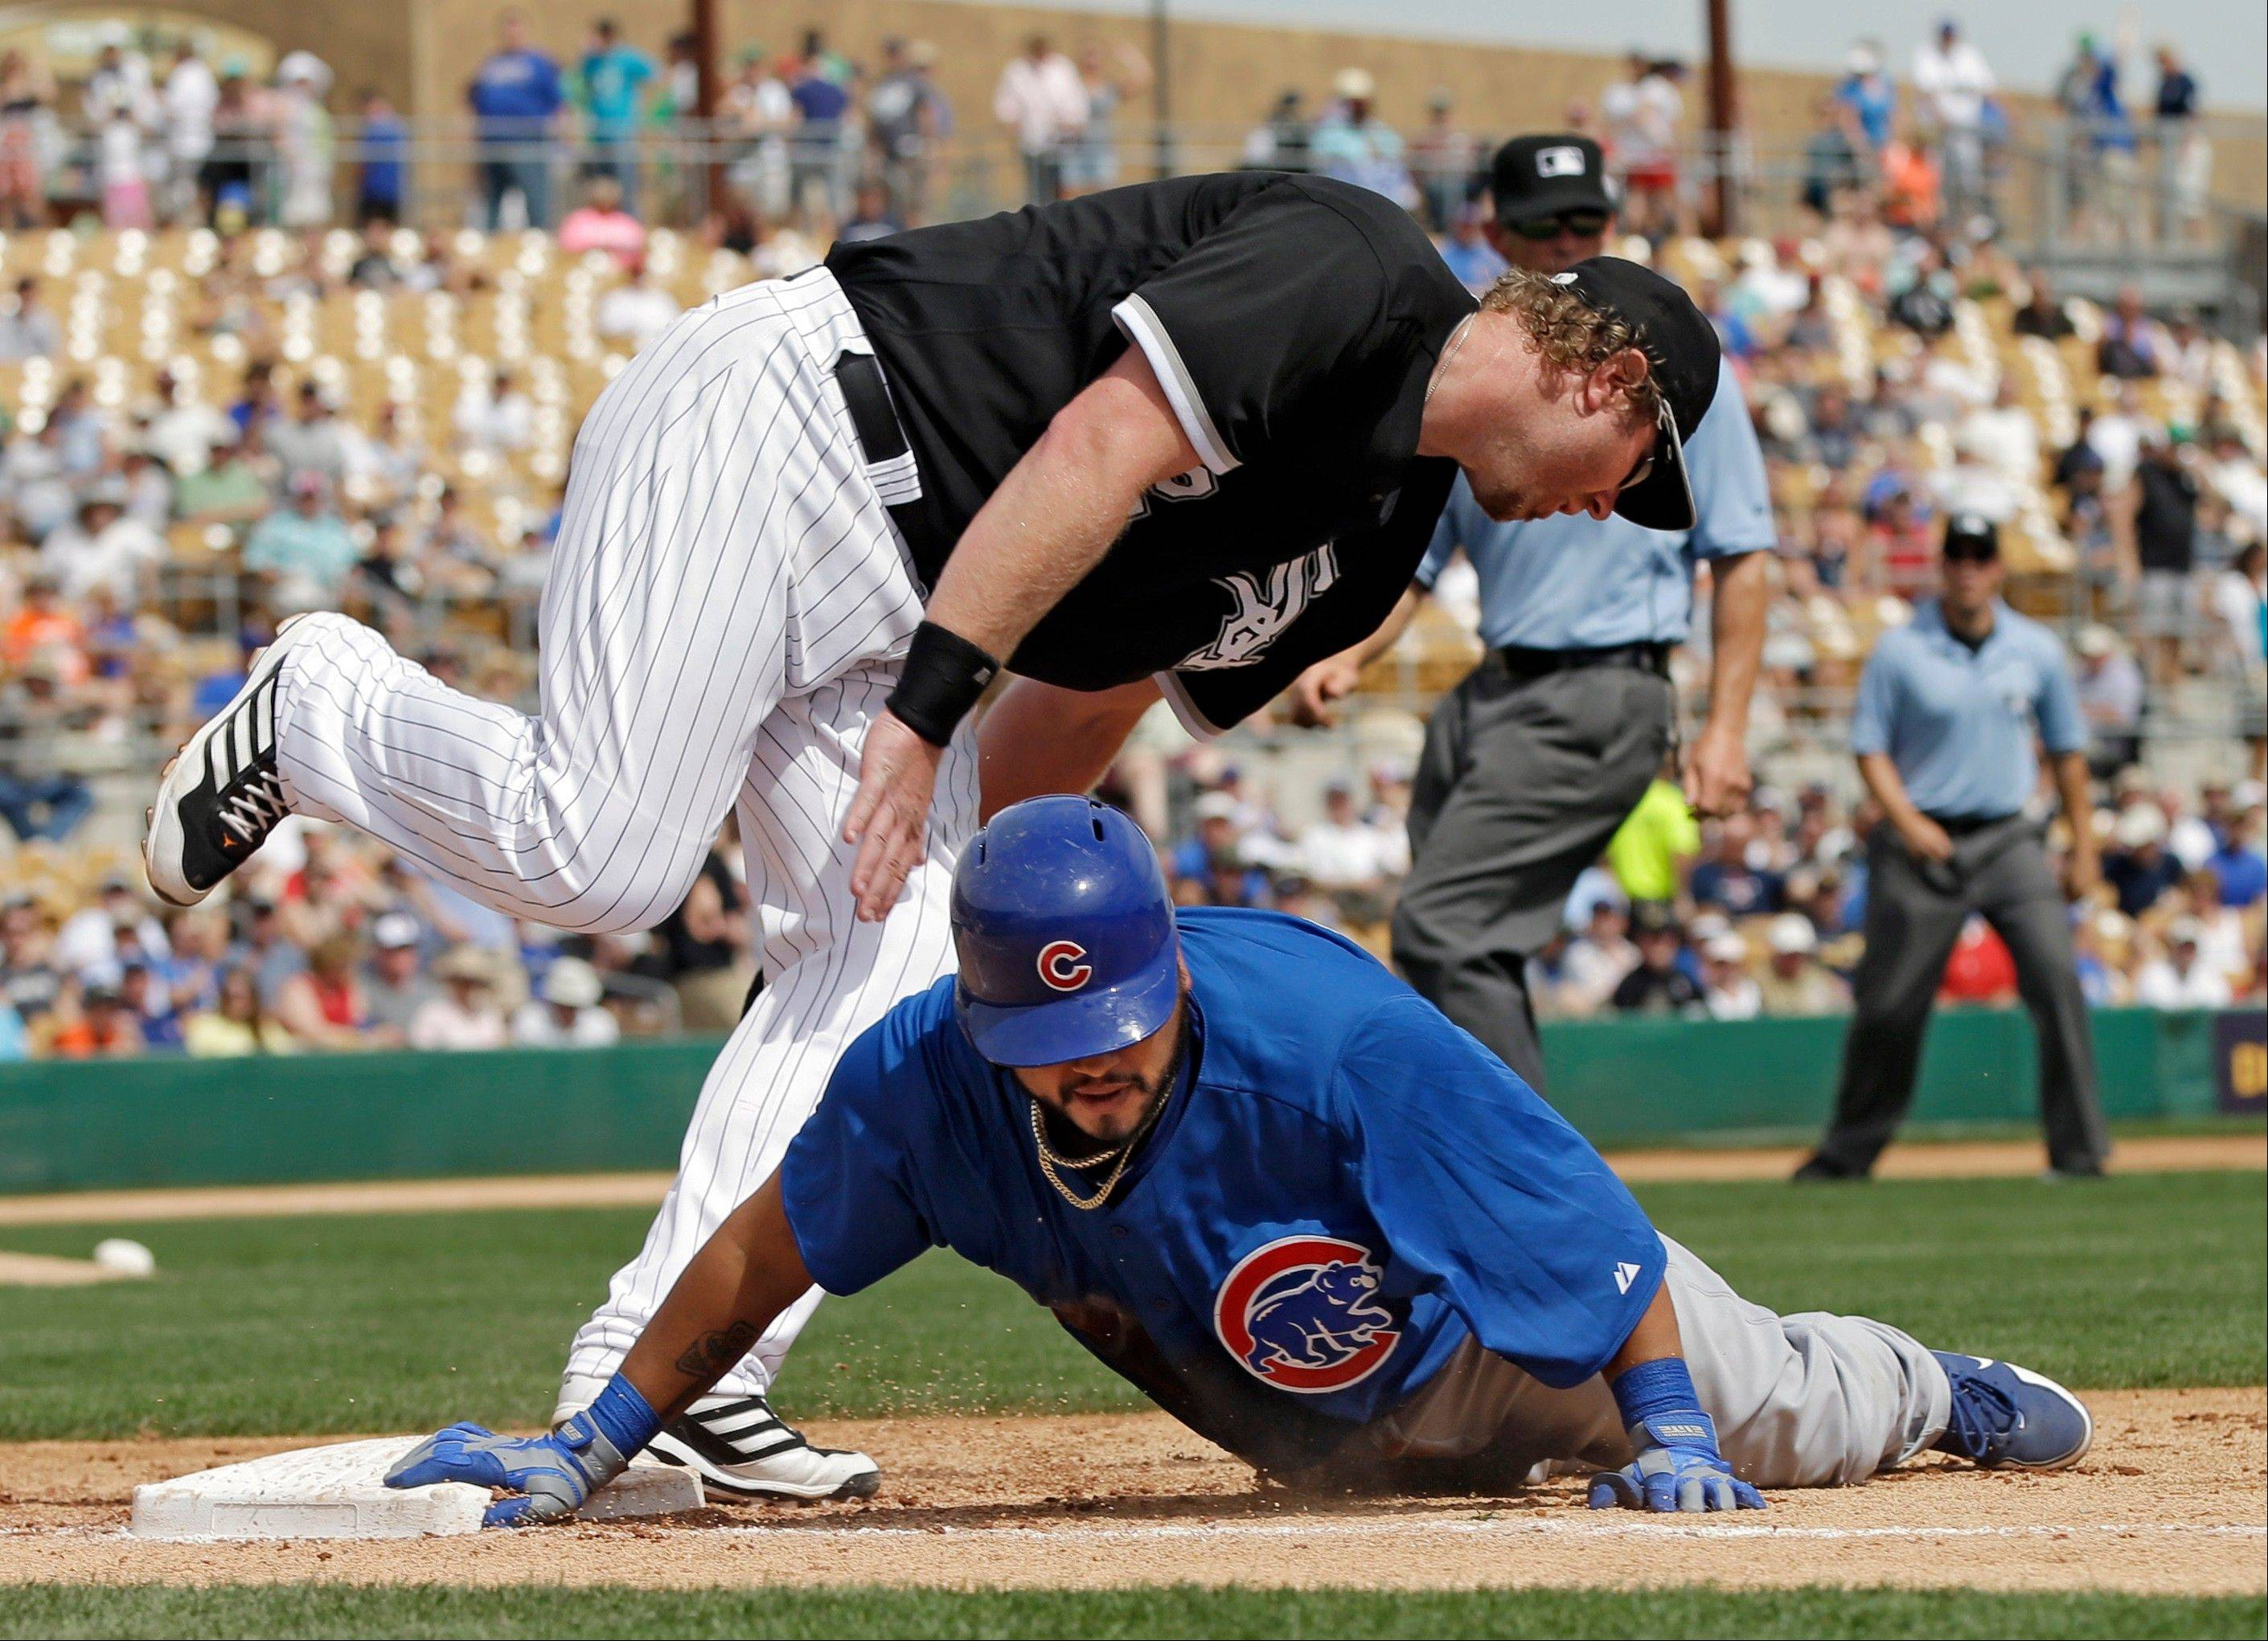 Dioner Navarro dives back to first under Chicago White Sox first baseman Adam Dunn after an RBI single in the fourth inning of an exhibition spring training baseball game Friday, March 15, 2013, in Glendale, Ariz.